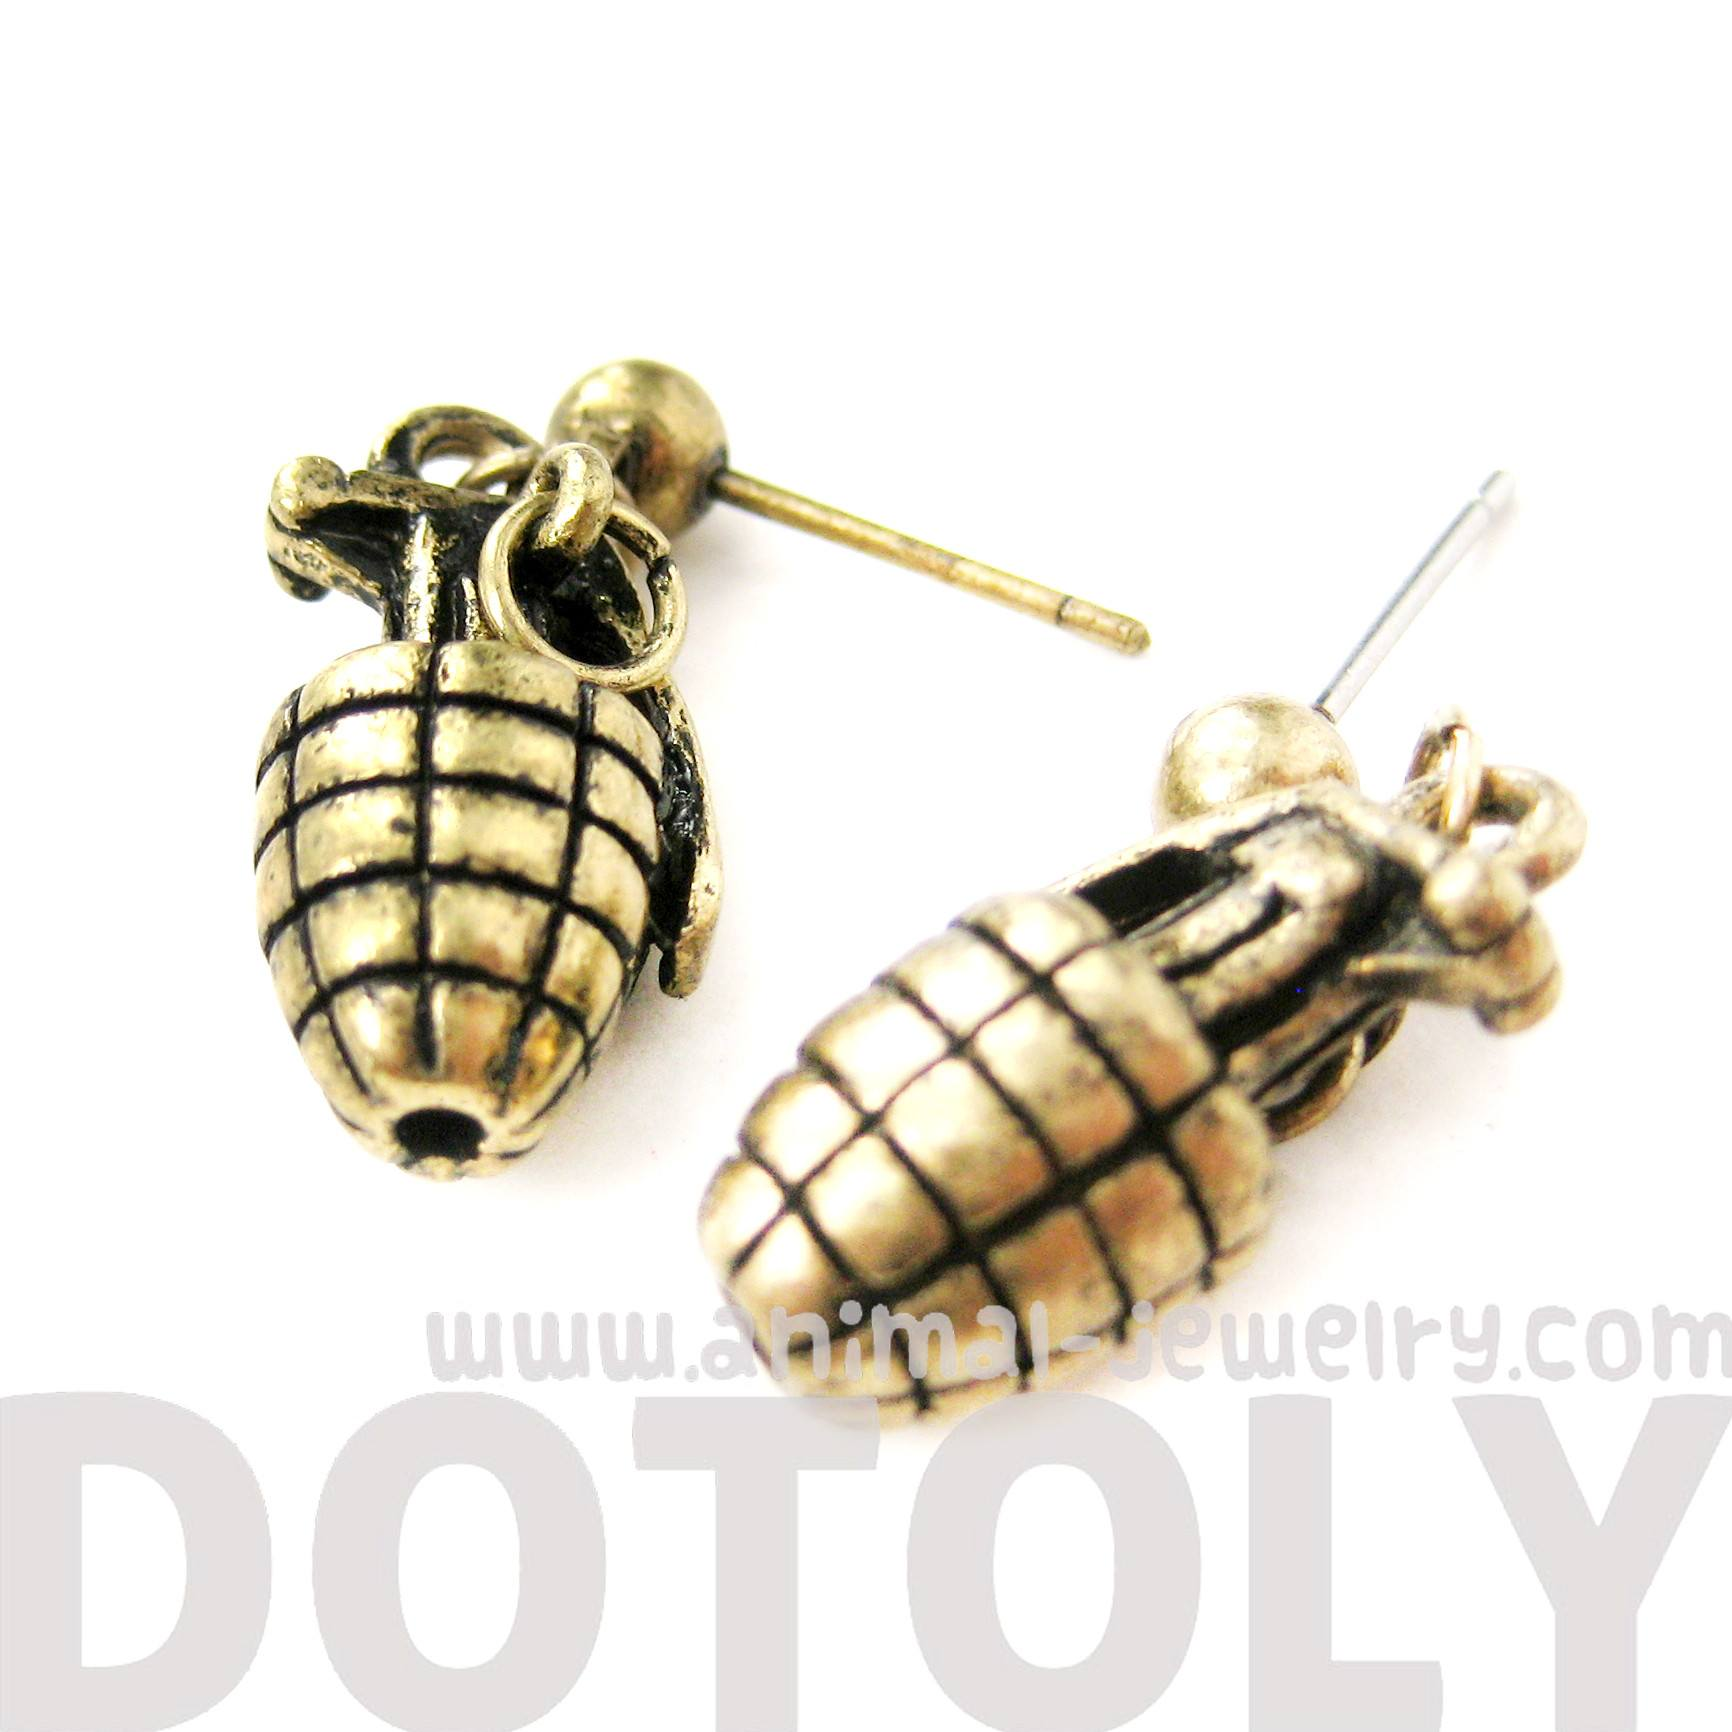 Hand Grenade Bomb Ammo Shaped Dangle Drop Stud Earrings in Brass